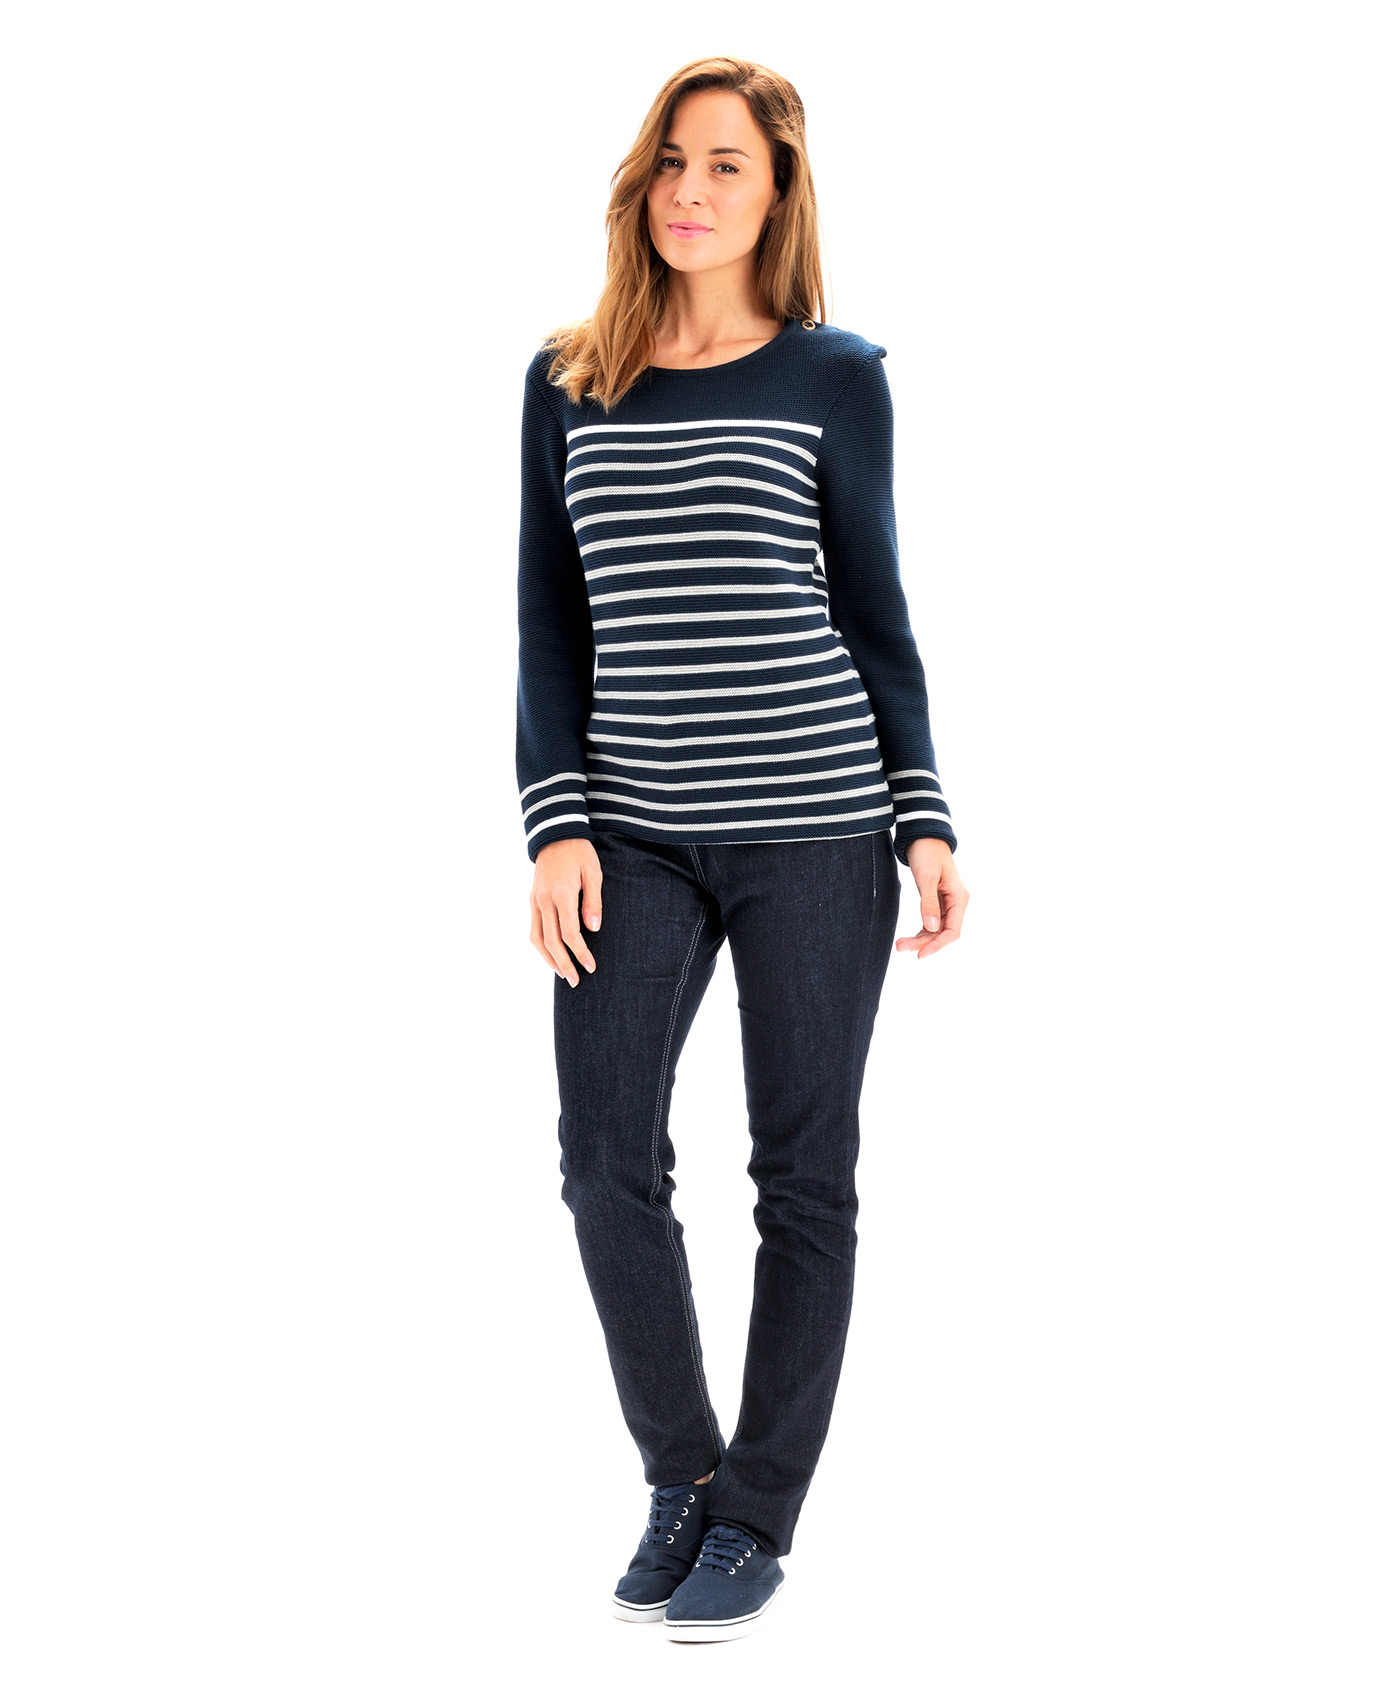 Exceptionnel Pull marinière femme rayé marine - Pull, Cardigan Mode Femme Terre  RM82